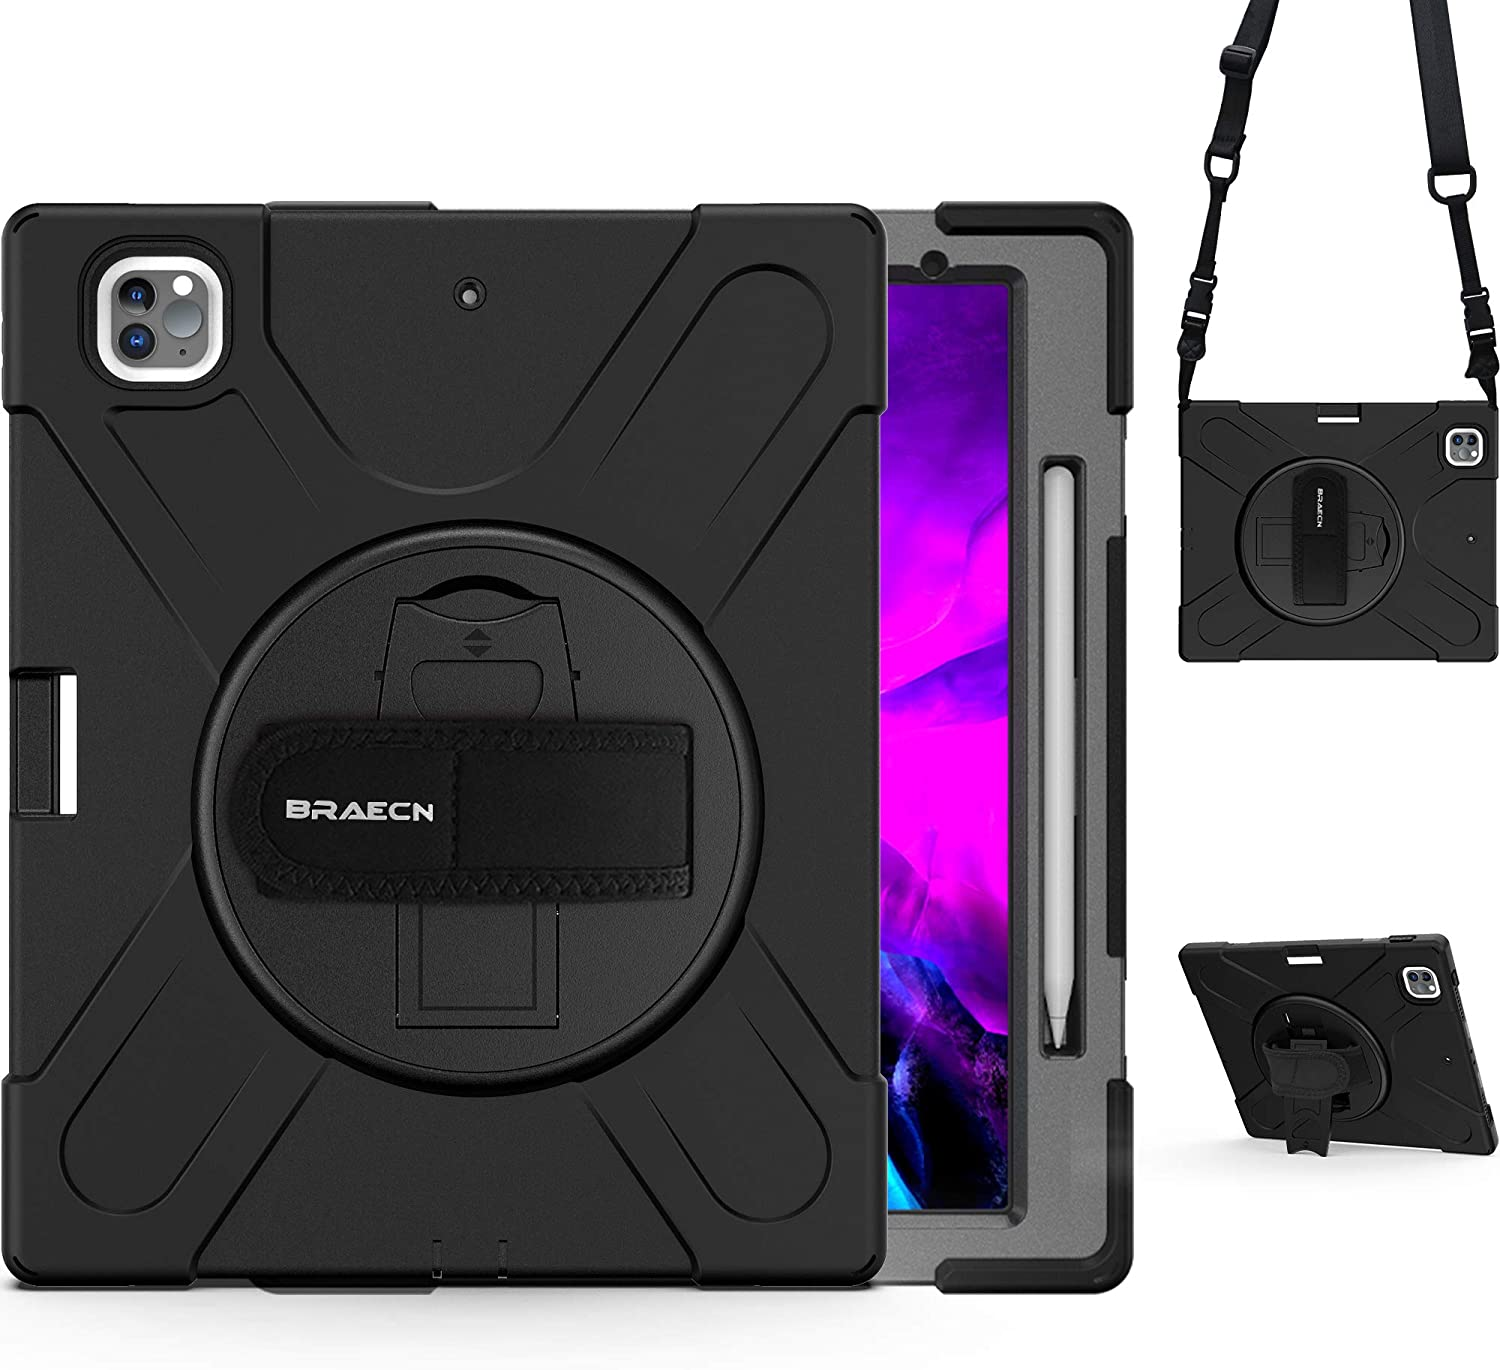 BRAECN iPad Pro 12.9 case 2020 4th Gen [Support 2nd Gen iPad Pencil Charging]- Rugged Heavy Duty Shockproof Case with Shoulder Strap,Rotating Hand Strap/Kickstand for iPad 12.9 case 2018 3rd Gen-Black